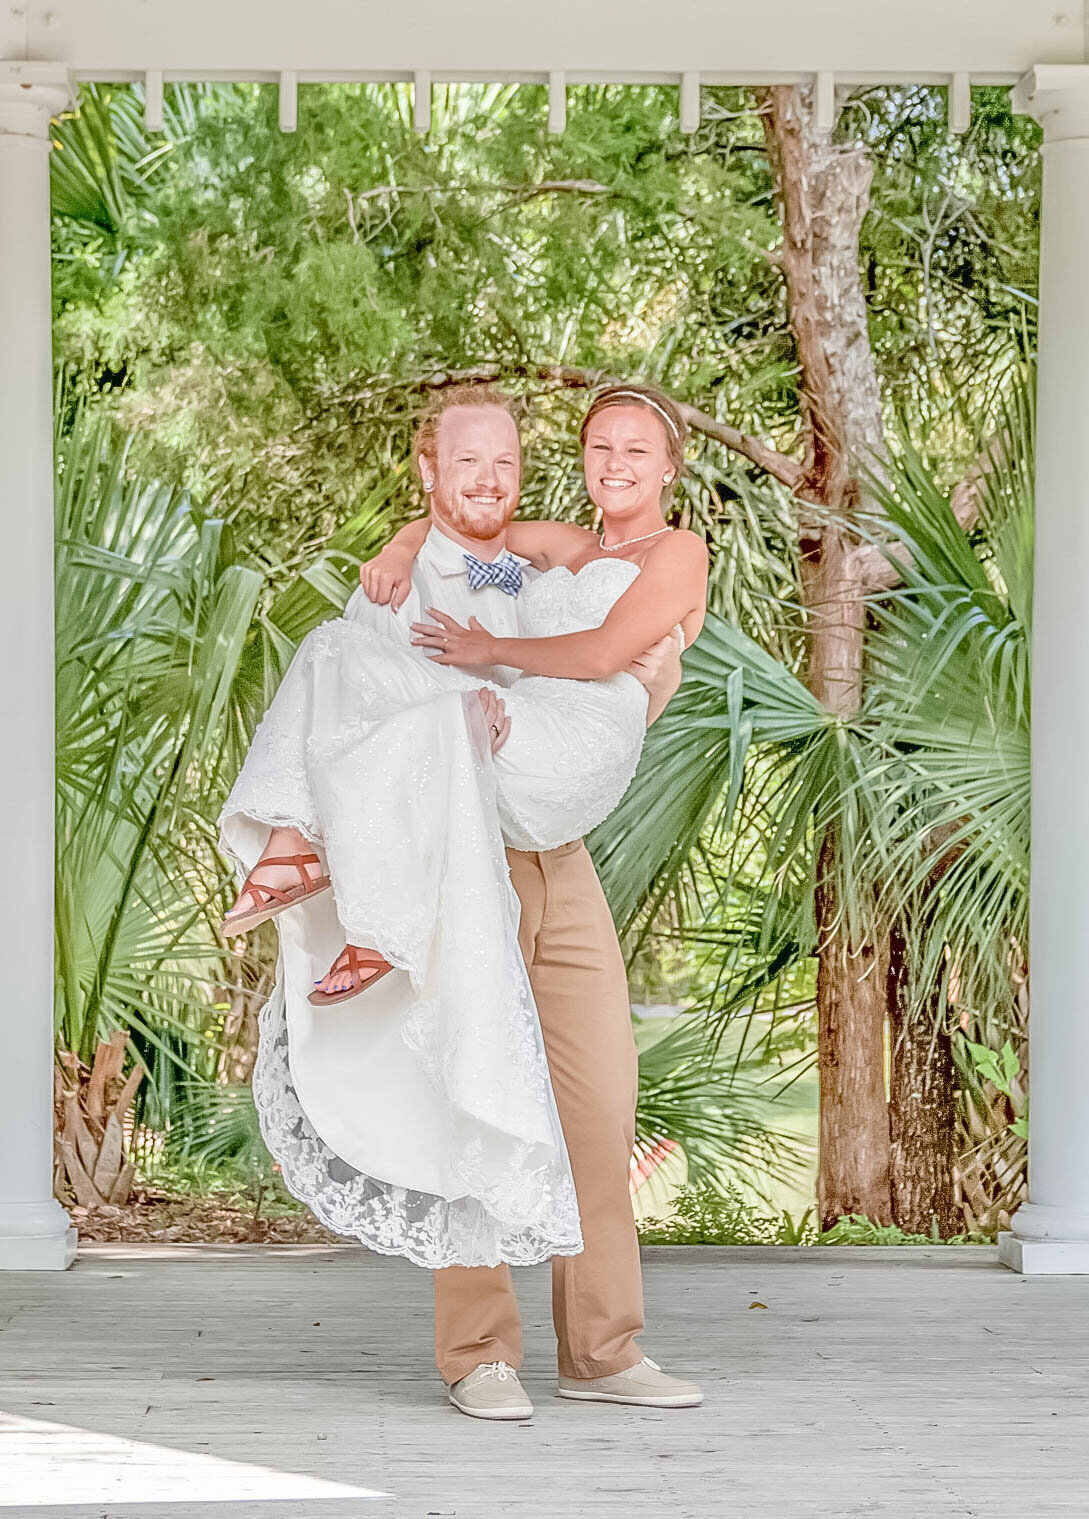 Bald Head Island Wedding Photography - Anna and Ray - Beach Carry Pose 2 - Wilmington Photographers Team